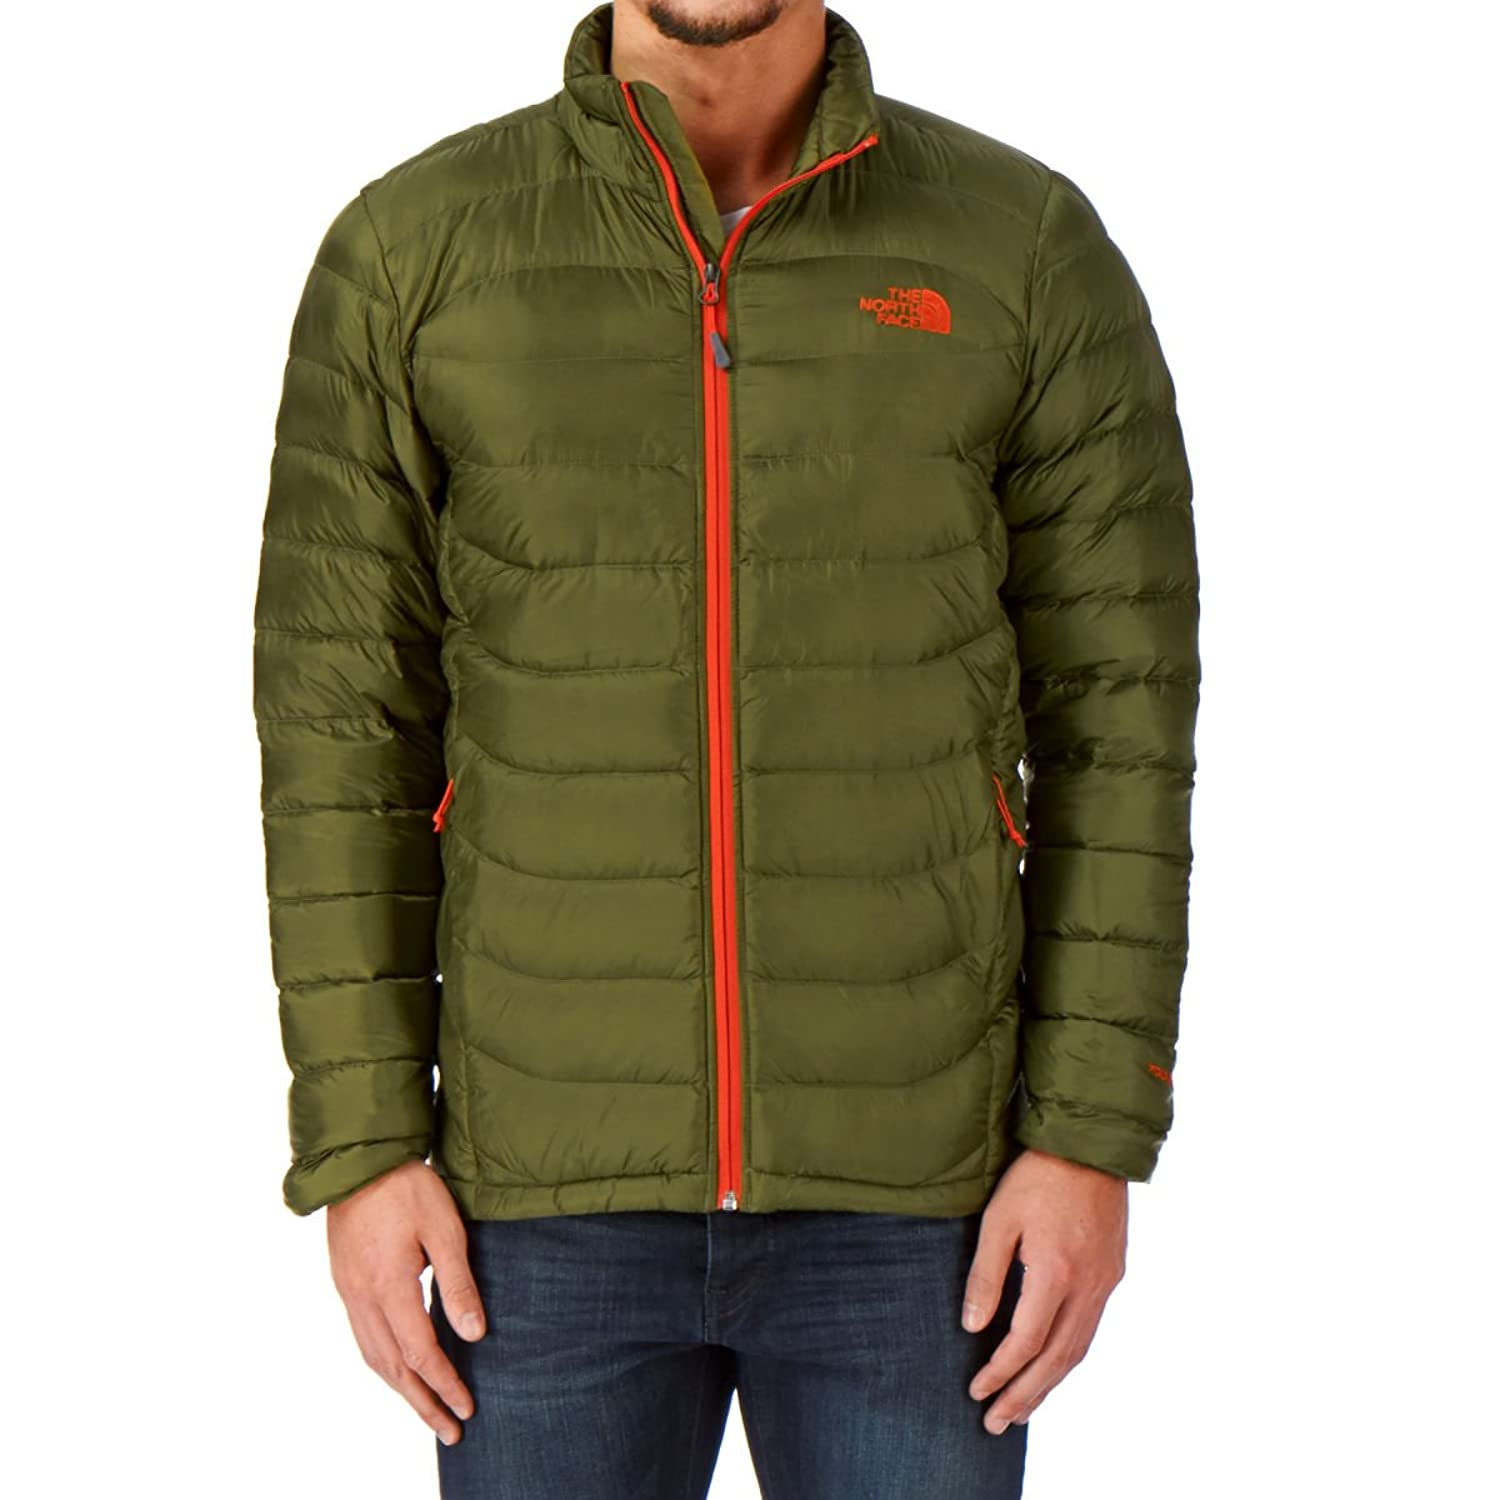 The North Face Imbabura Jacket – G.i. Green jetzt kaufen